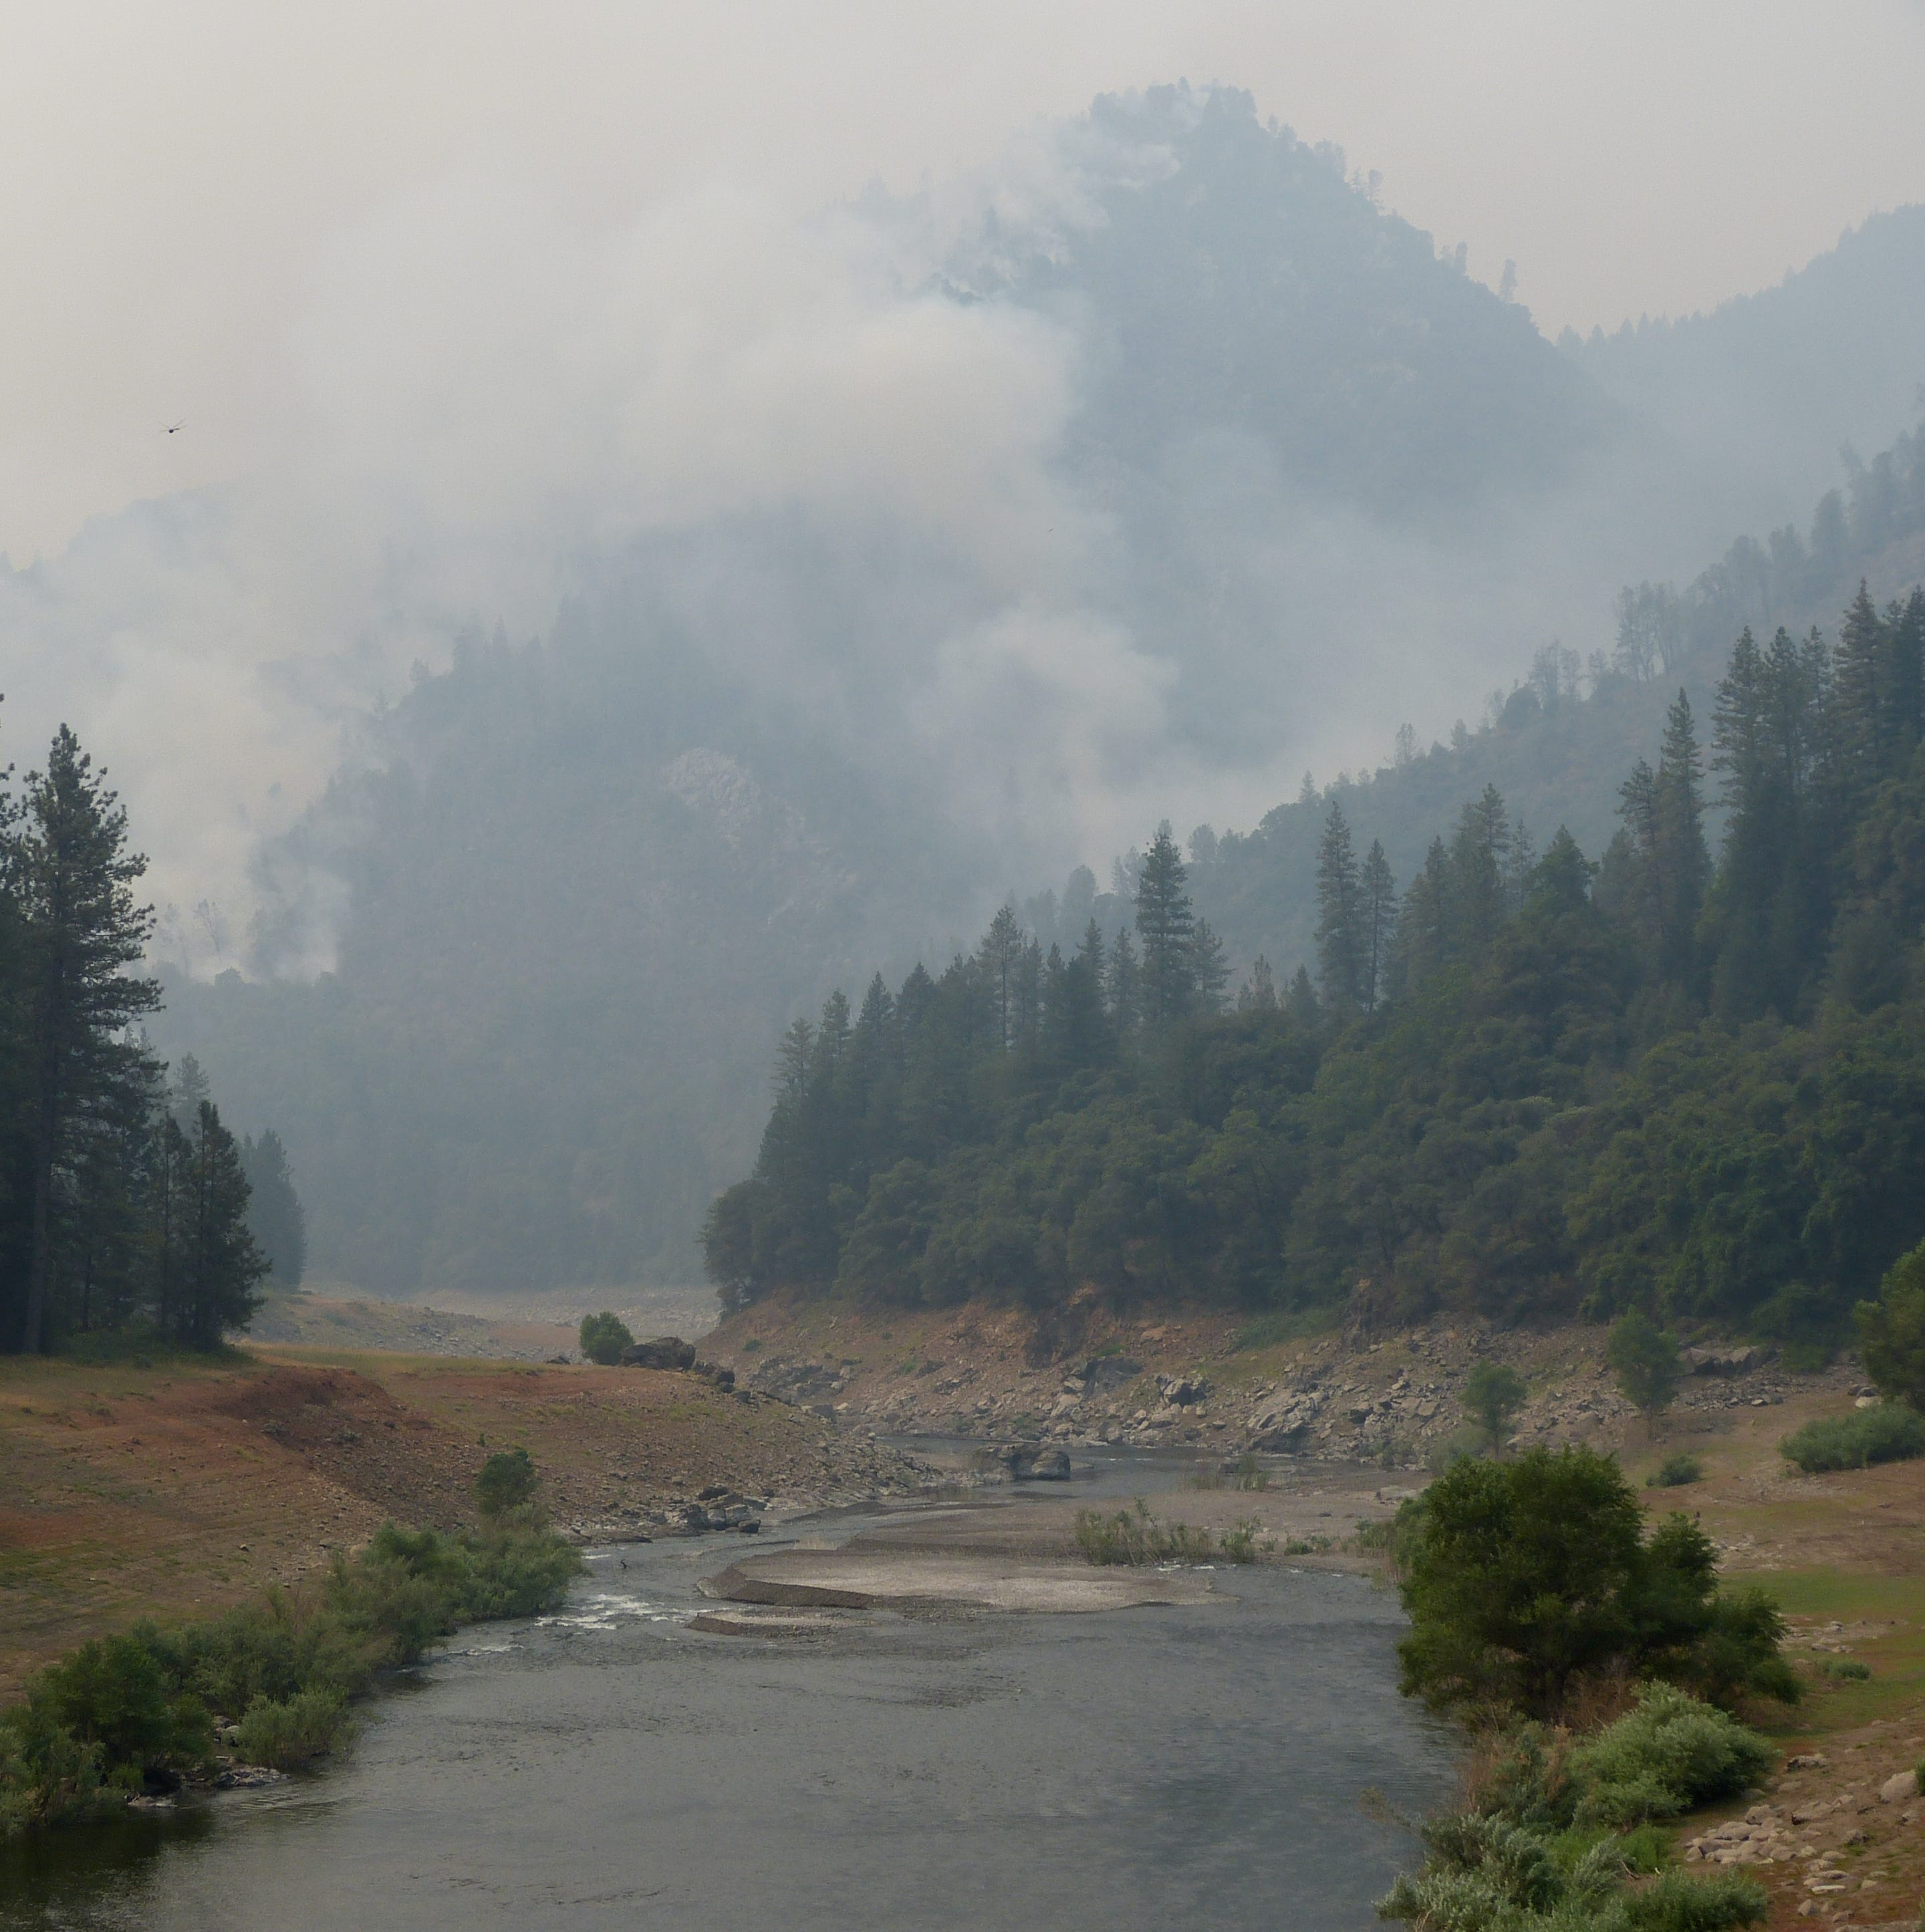 Update: Hirz Fire grows to 6,400 acres, new evacuations ordered